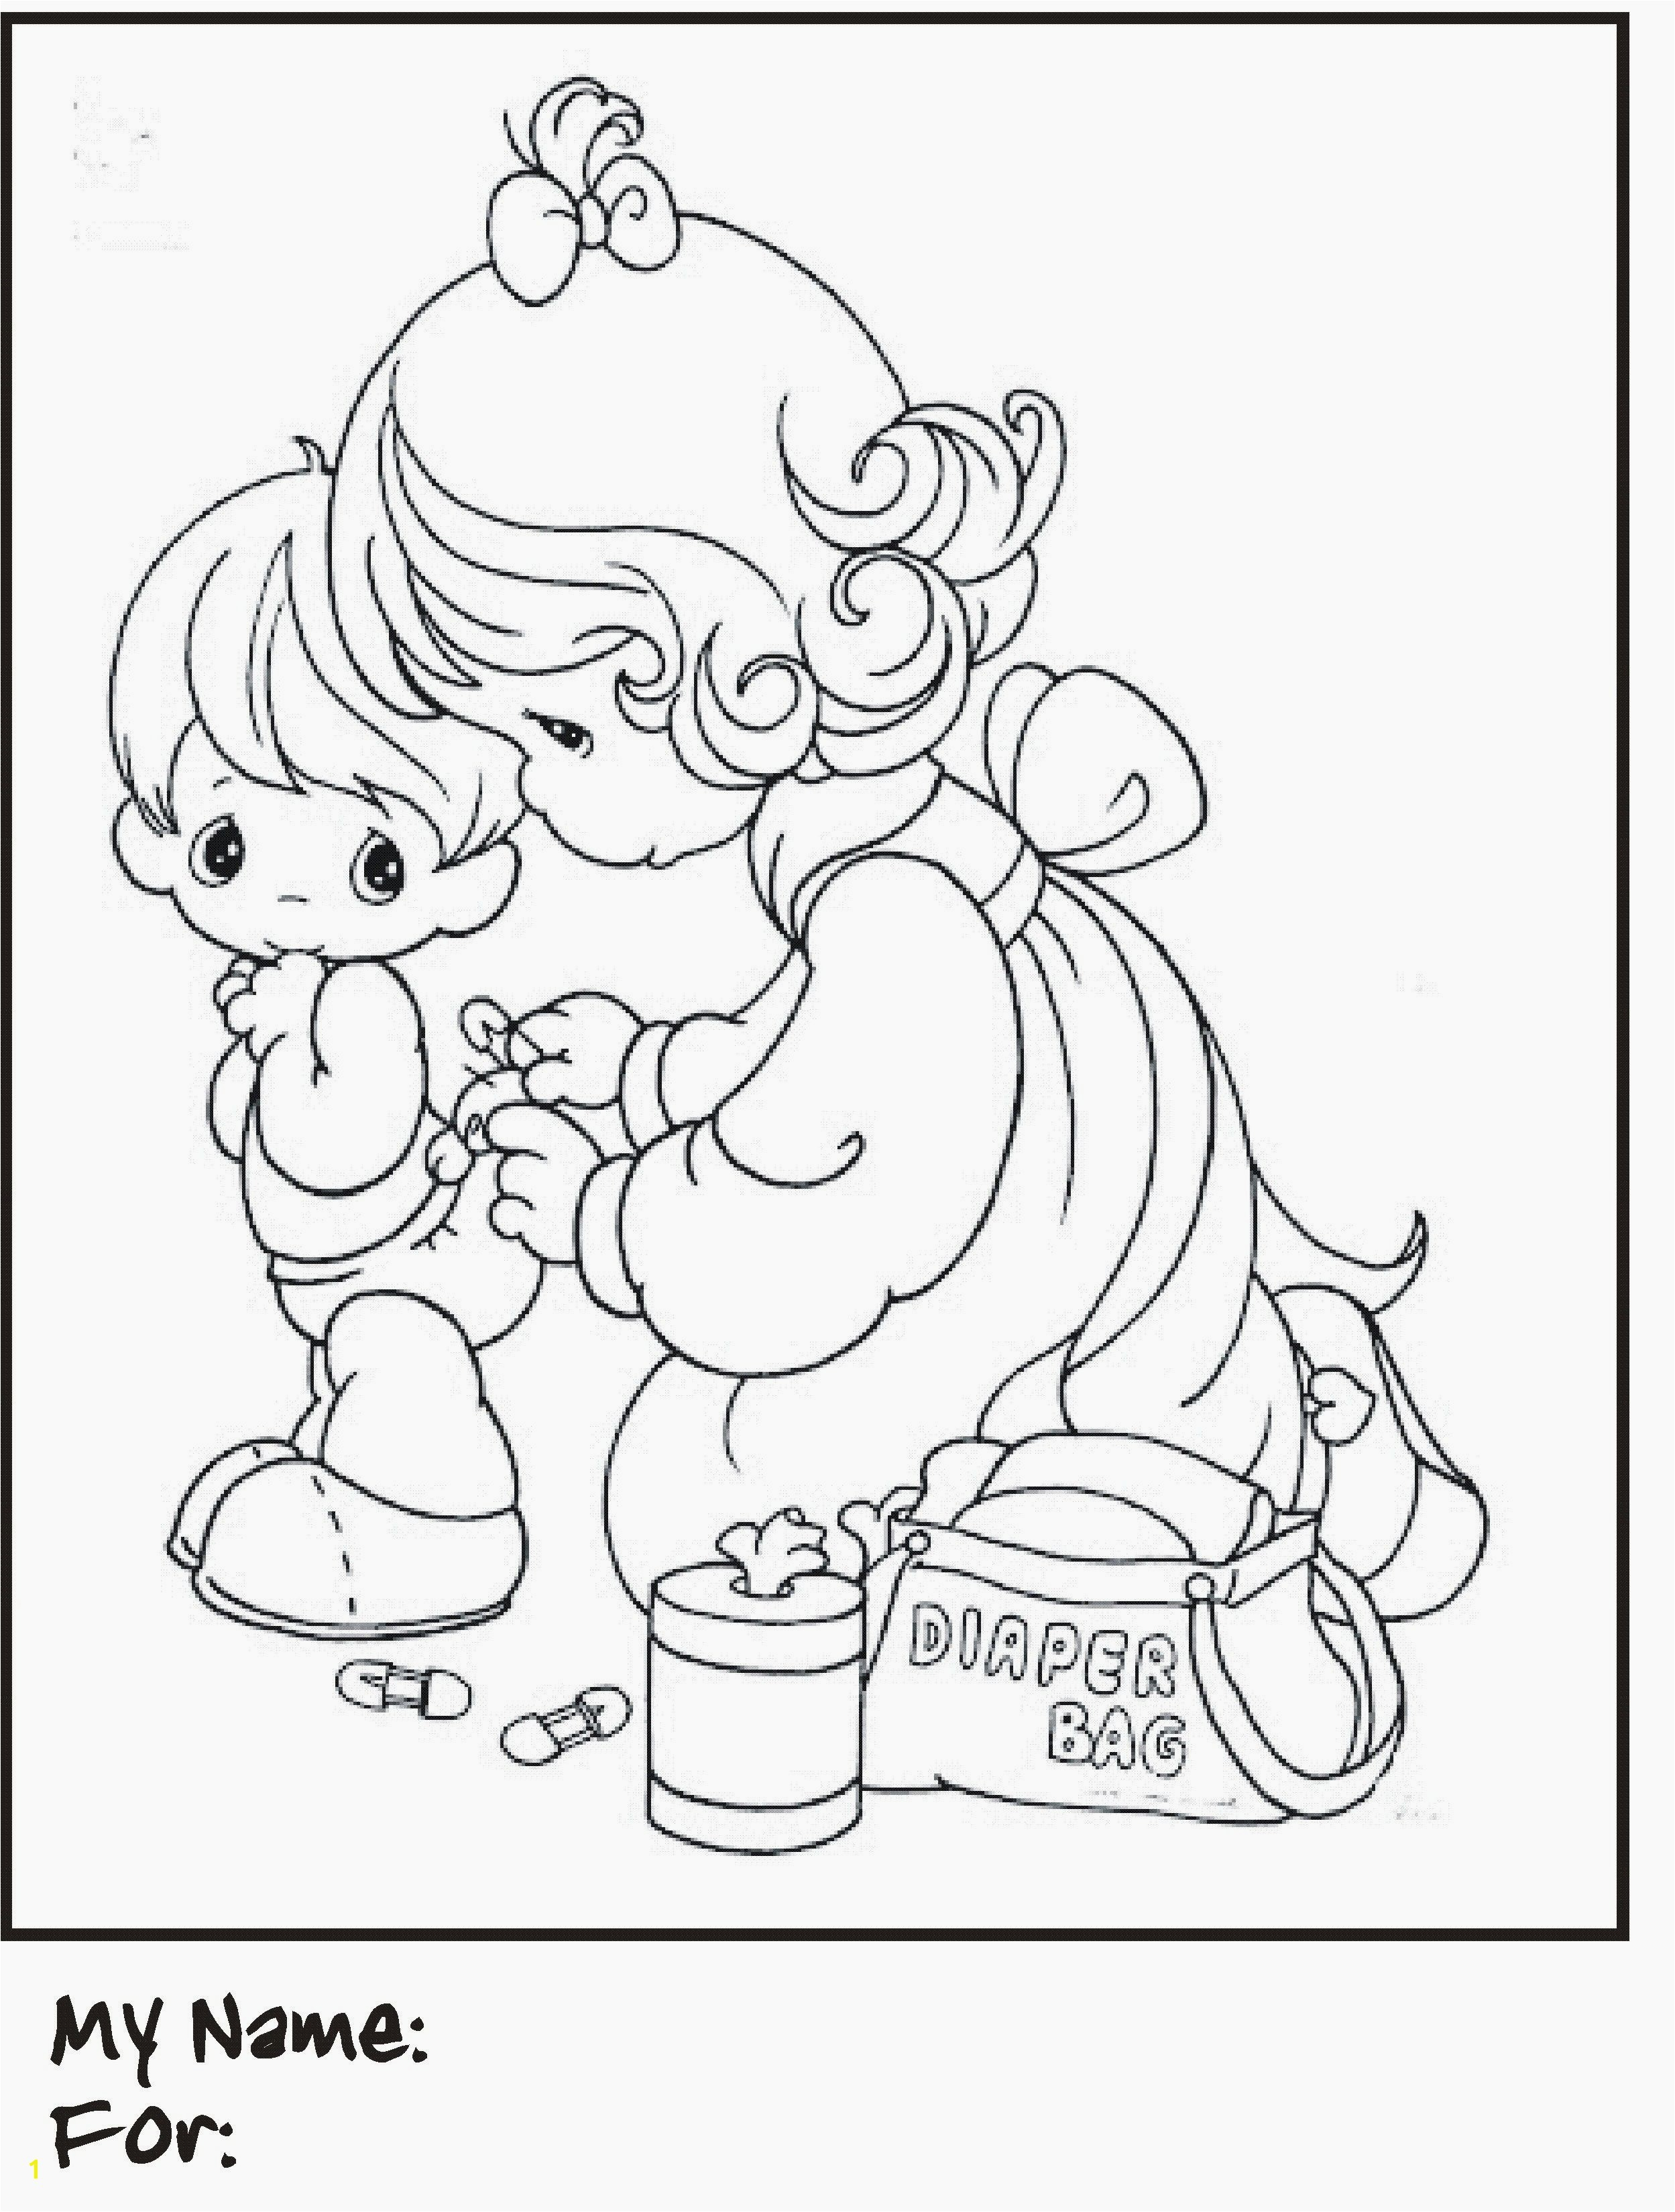 Cute Precious Moments Coloring Pages 12 Fresh My Precious Moments Coloring Pages